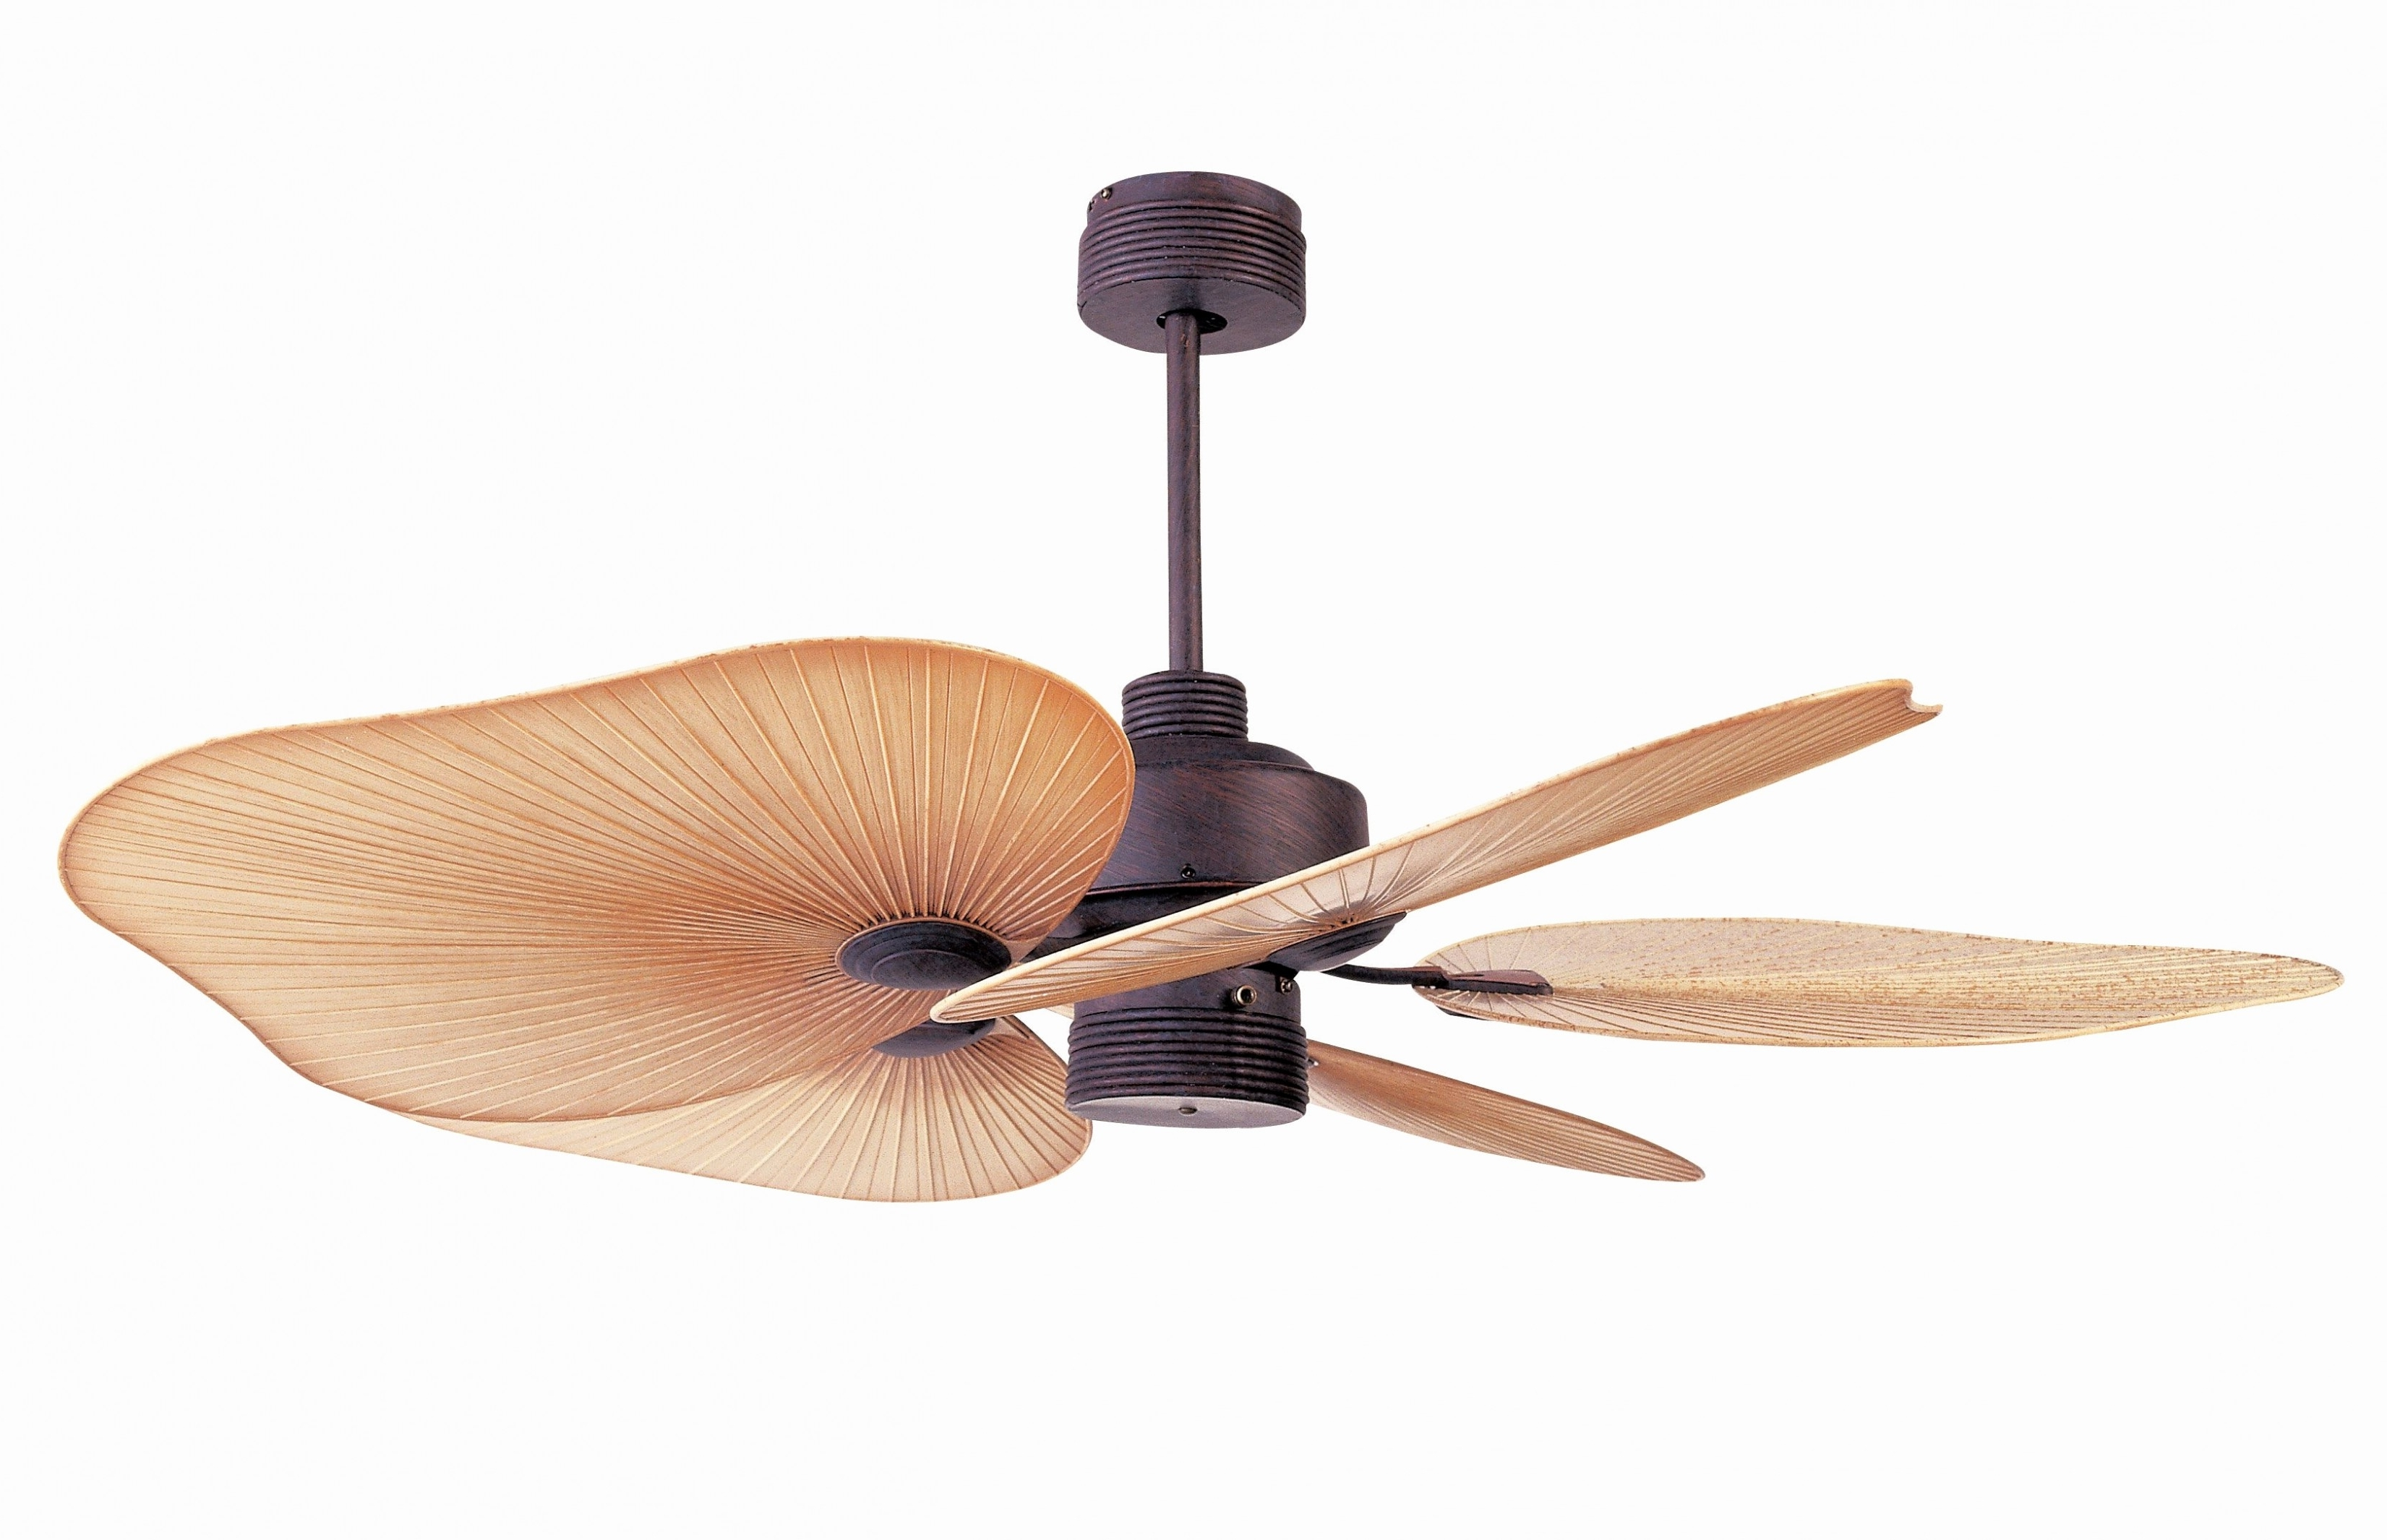 Current Balancing A Ceiling Fan Fresh Tropical Ceiling Fans Ideas Throughout Tropical Outdoor Ceiling Fans (View 2 of 20)